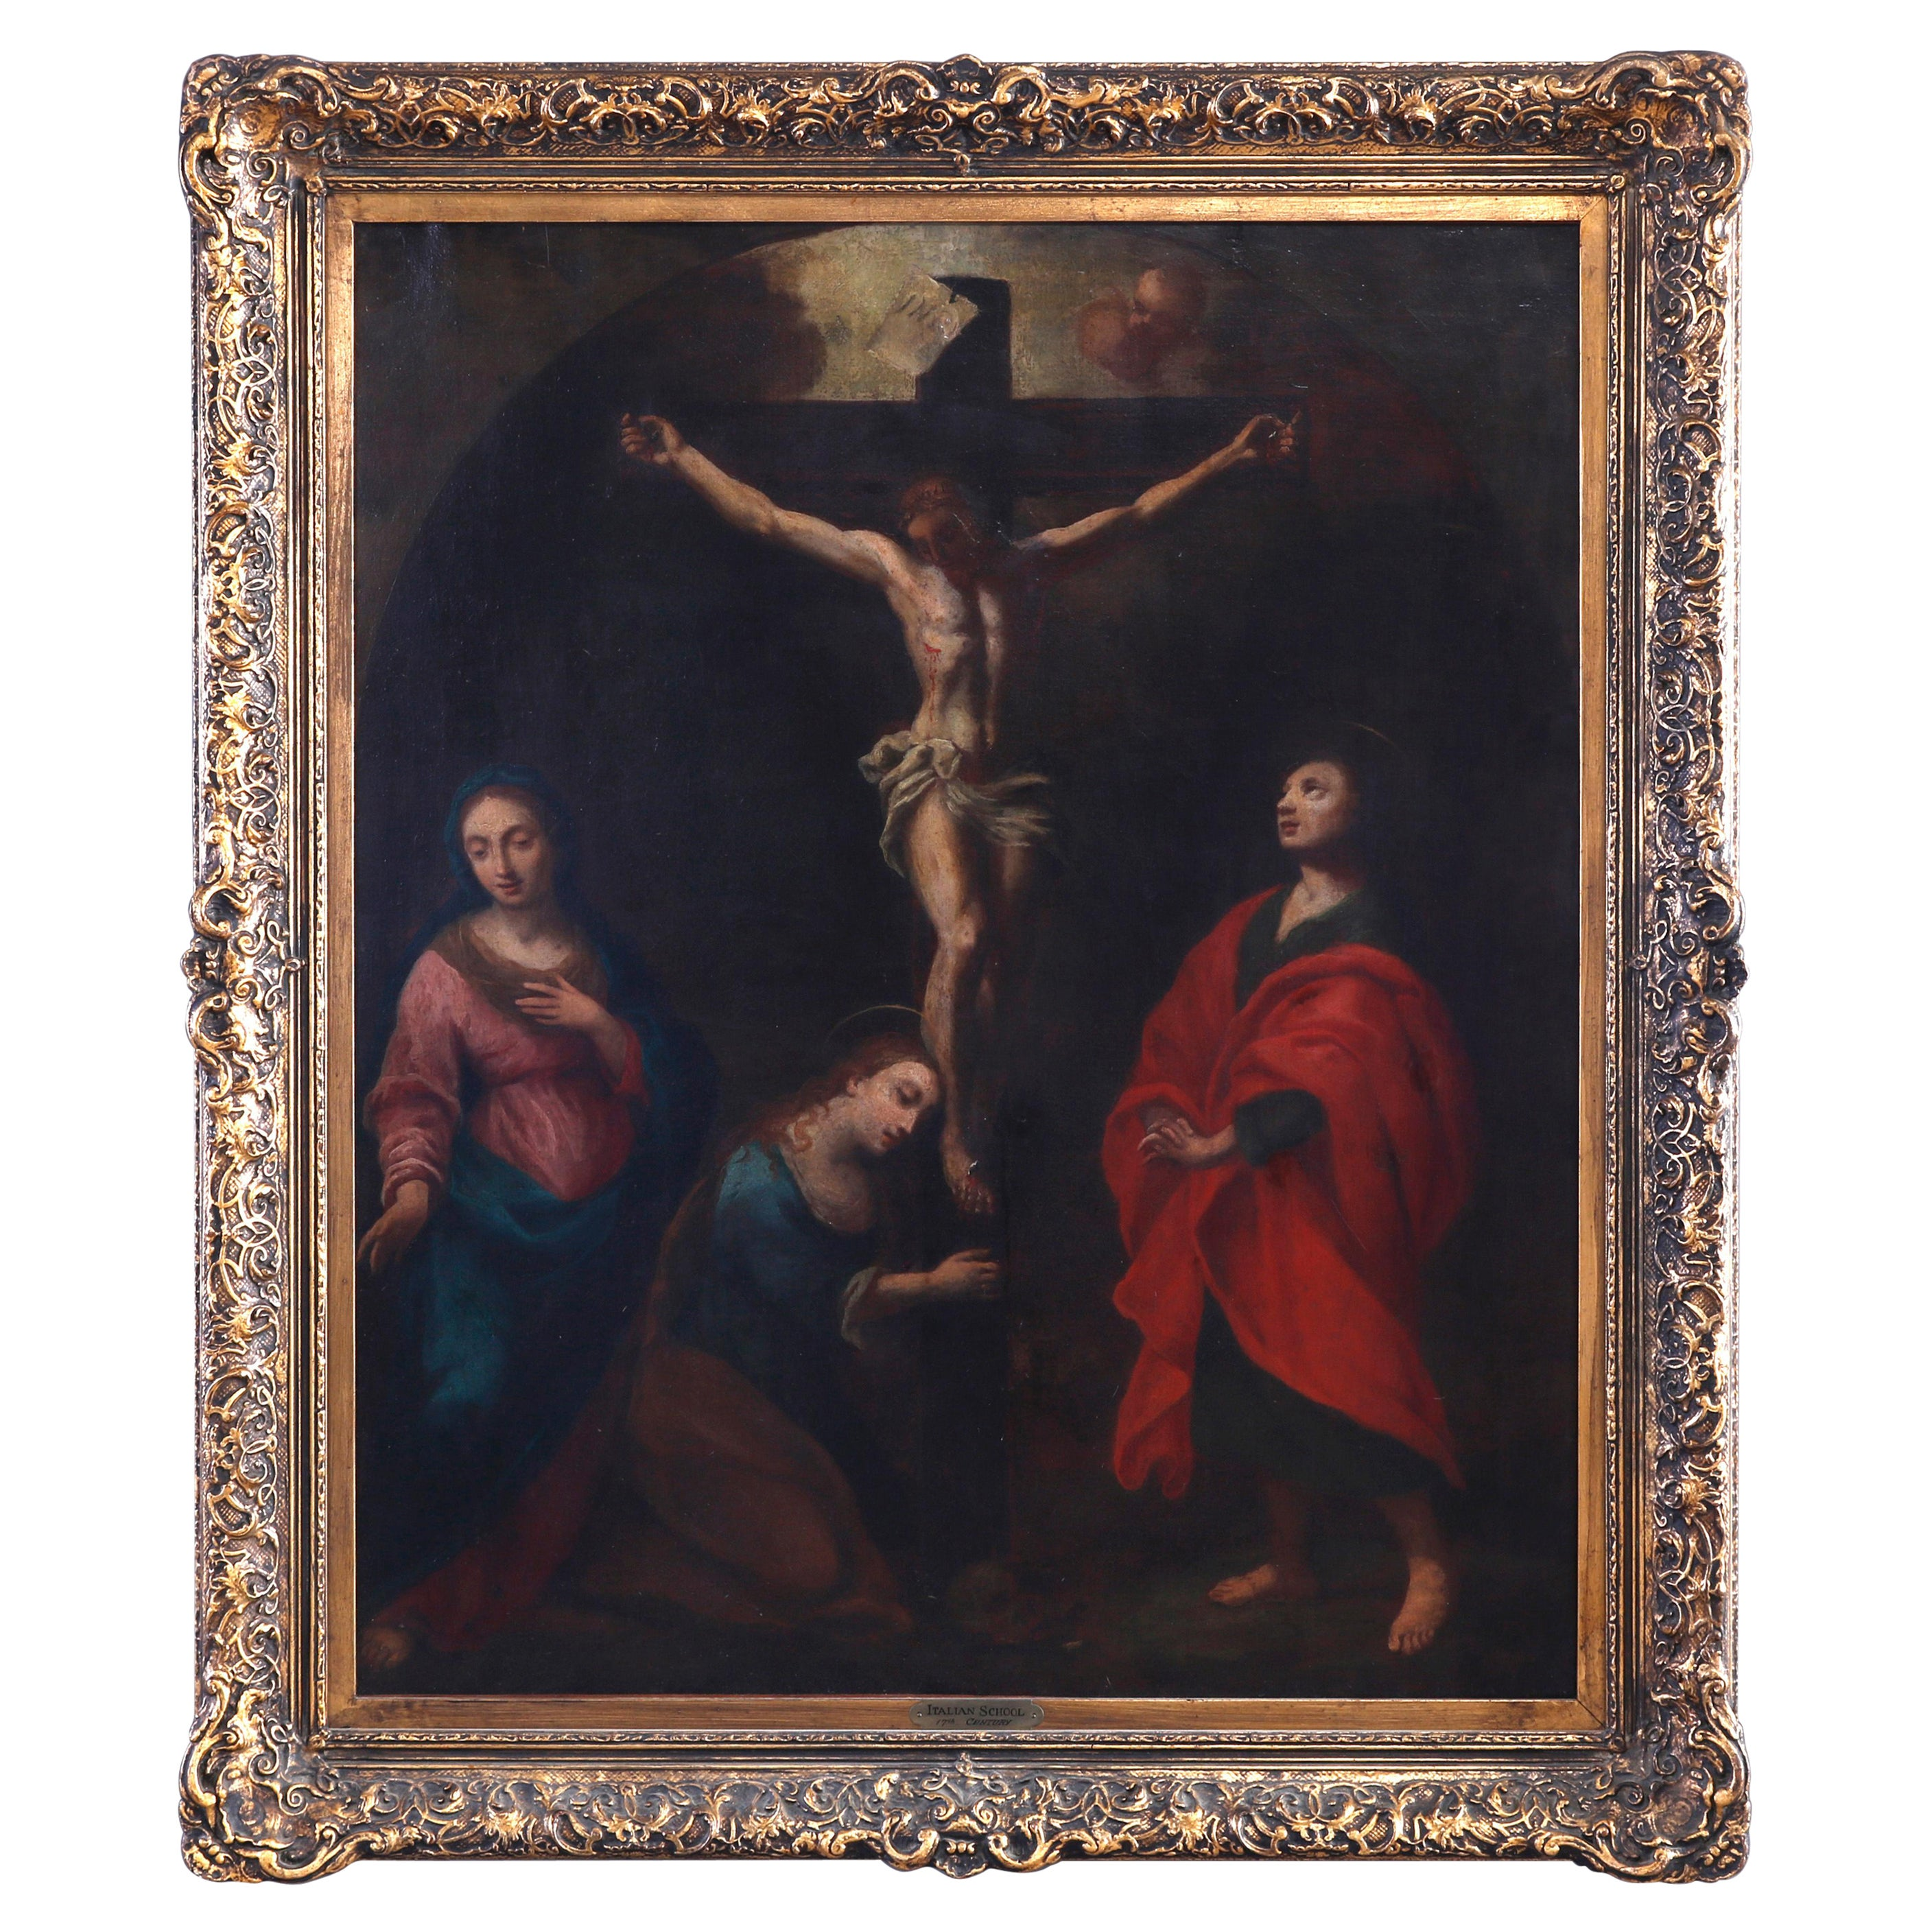 Antique Italian School Oil on Canvas Painting, Crucifixion Of Christ, 19th C